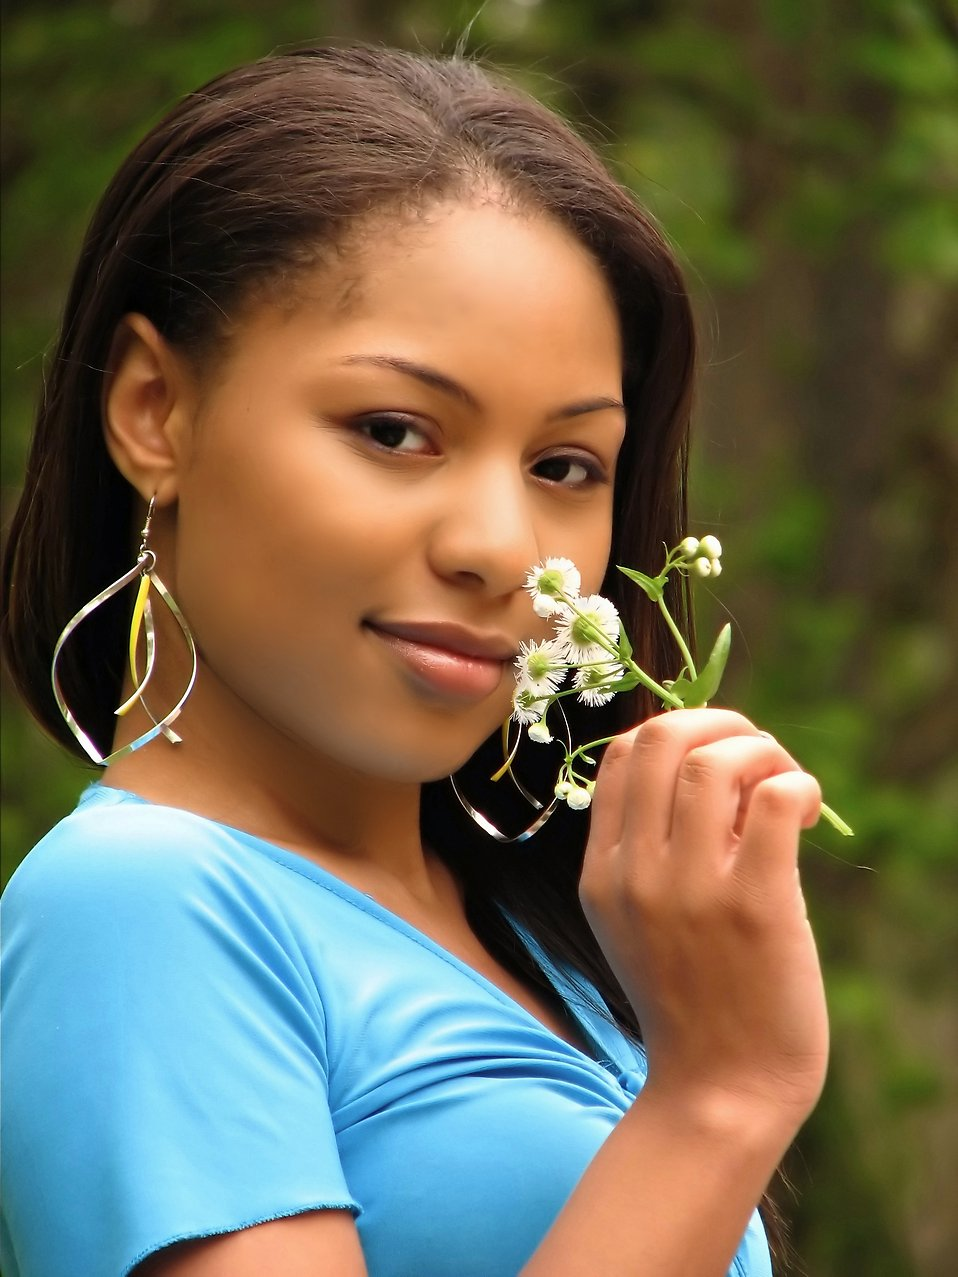 A beautiful African American teen girl smelling a flower : Free Stock Photo